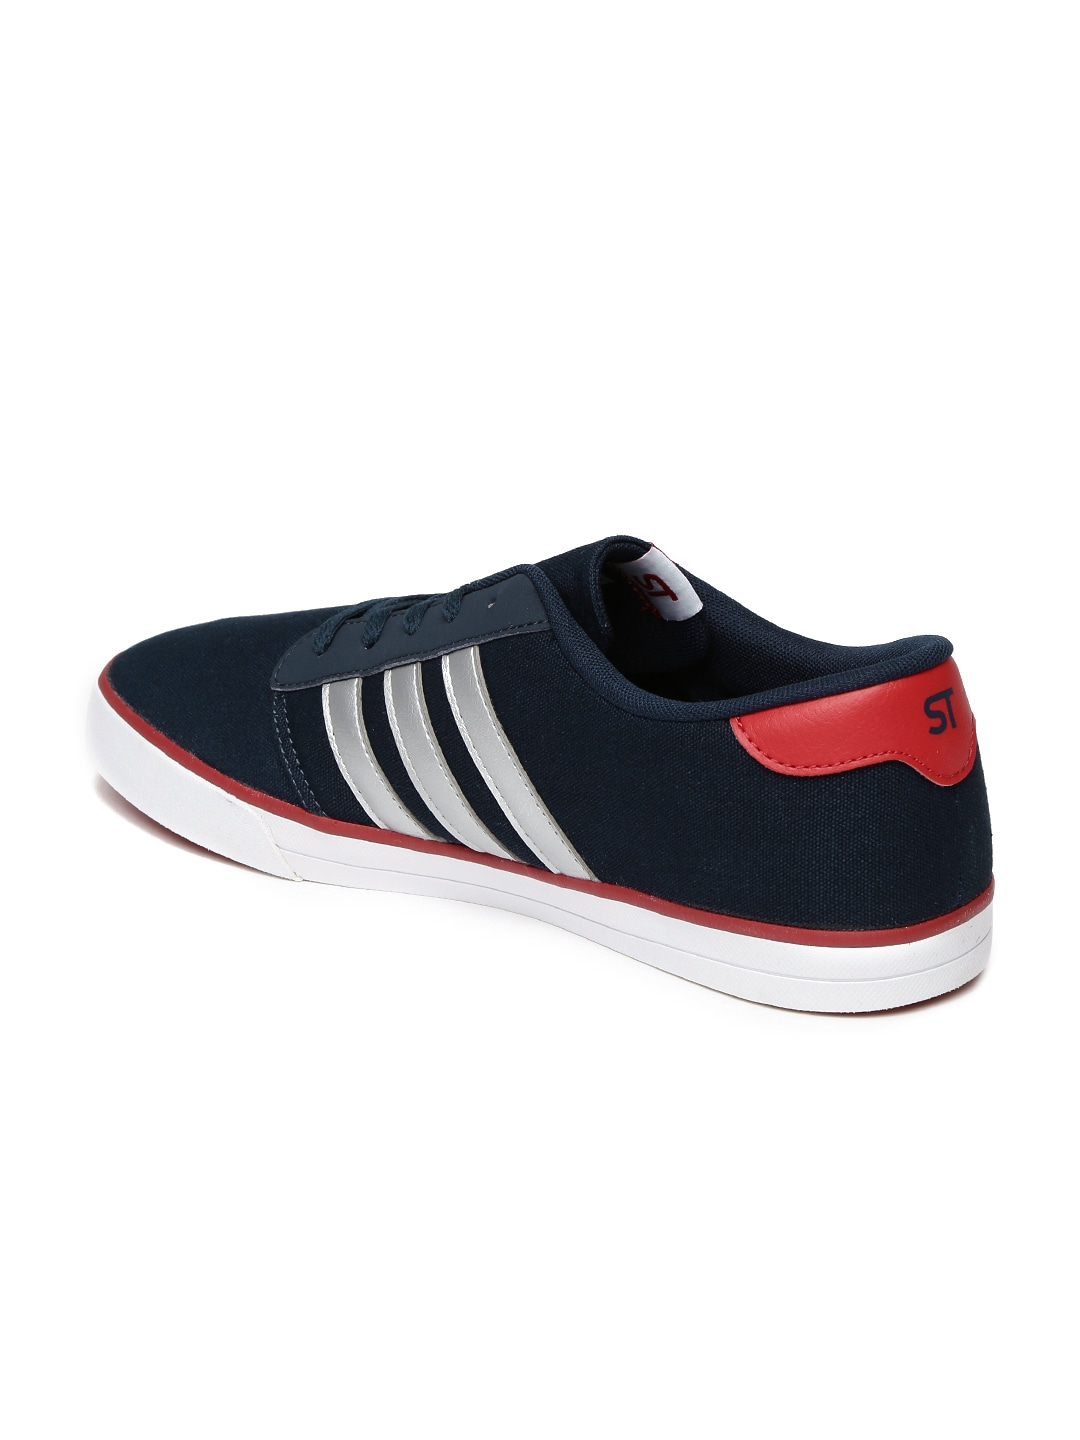 best website aa456 4253a ... adidas neo leather gold red ...